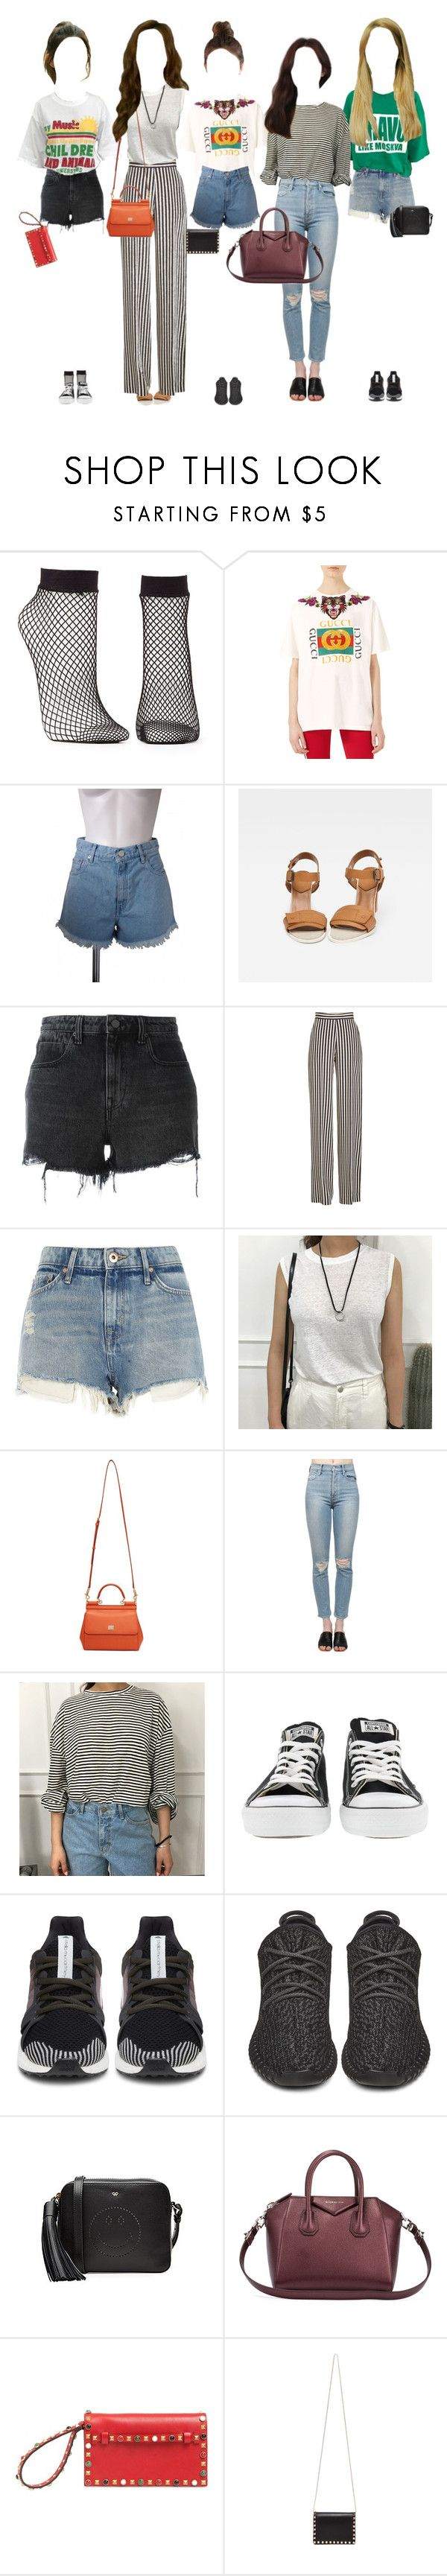 """Promise arriving at music show"" by promise-official ❤ liked on Polyvore featuring Charlotte Russe, Gucci, G-Star Raw, Alexander Wang, Etro, River Island, Dolce&Gabbana, Kerr®, Converse and adidas"